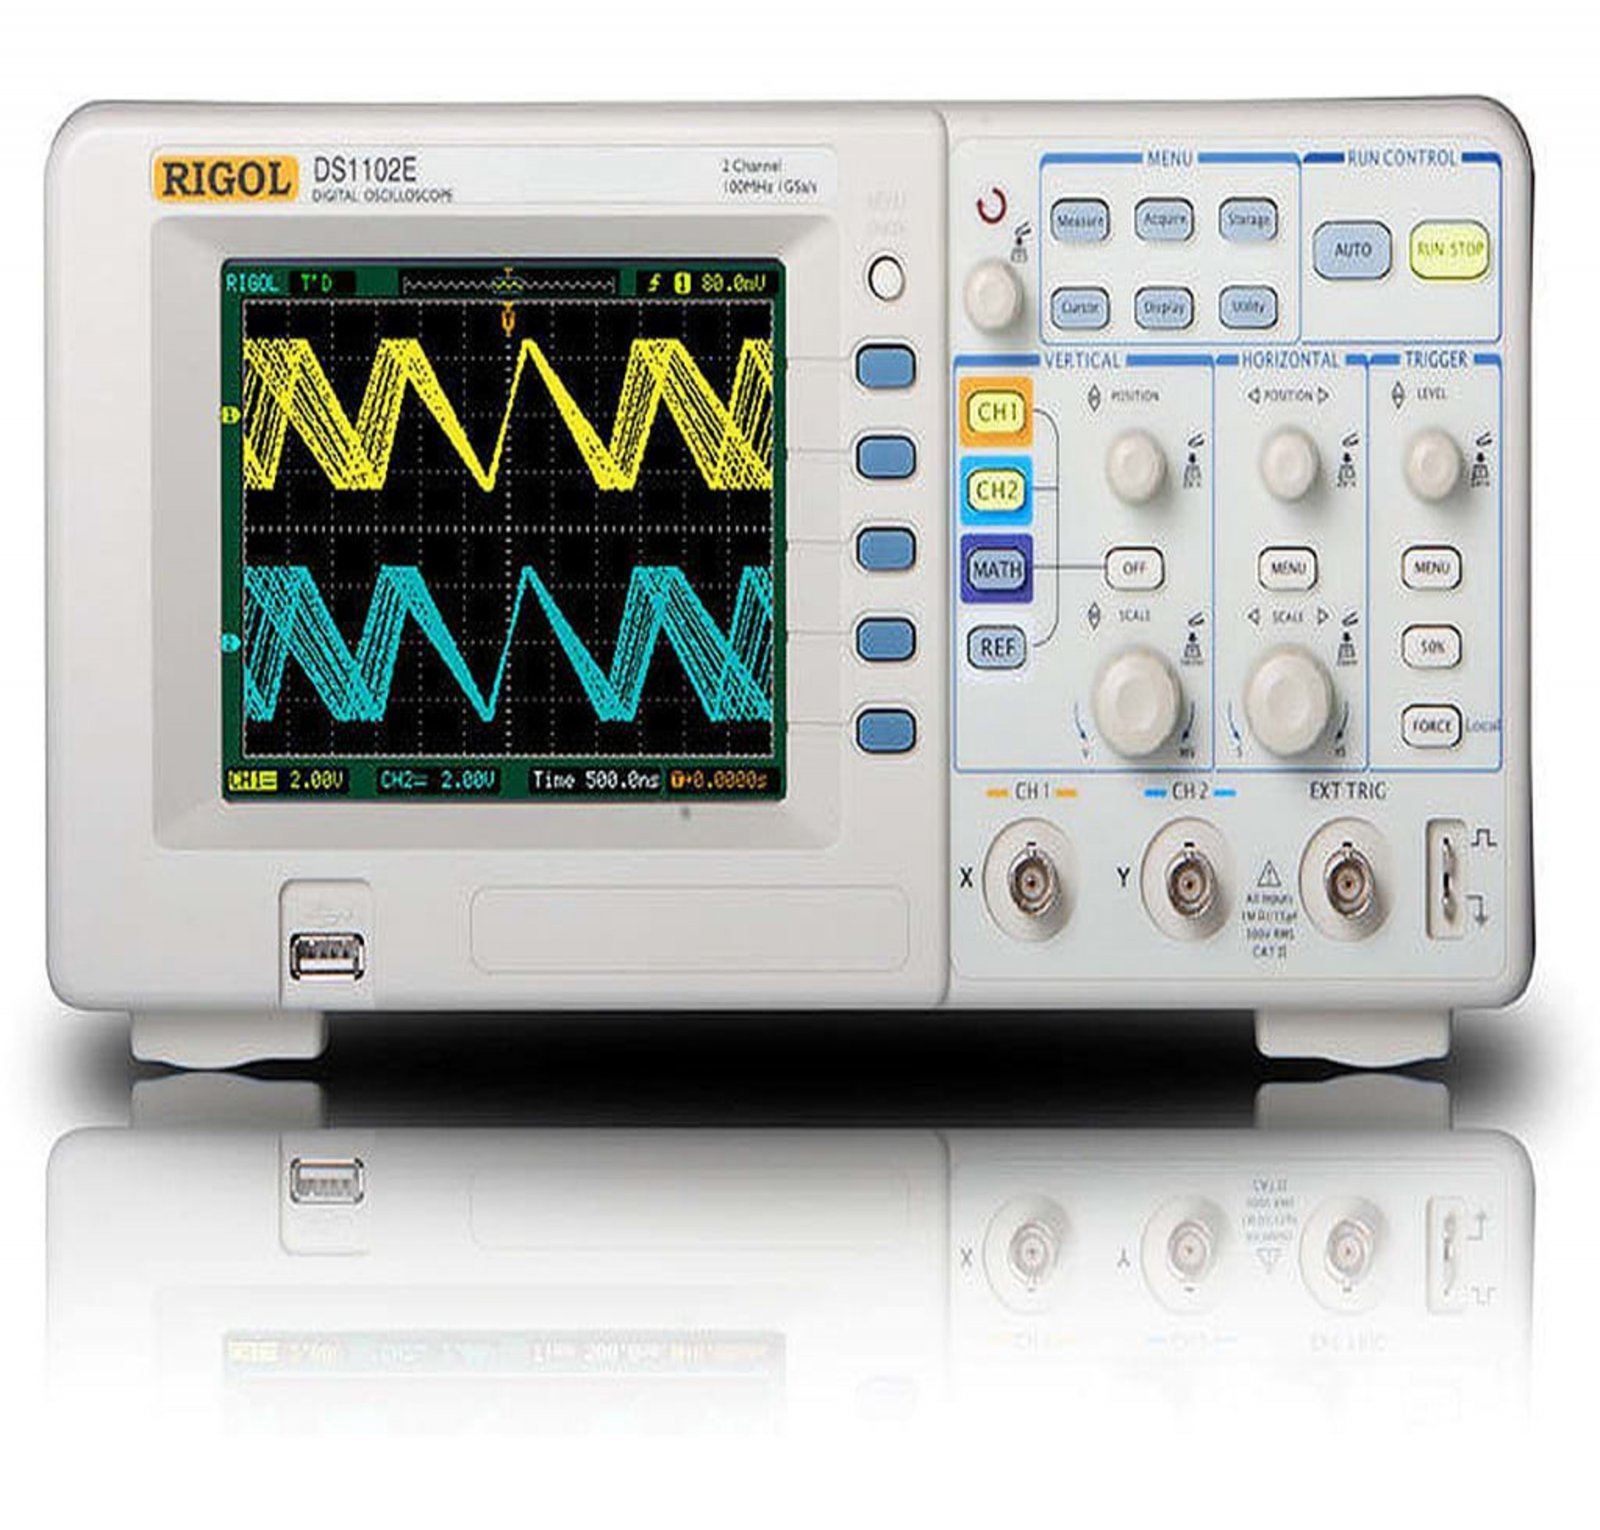 RIGOL Digital Oscilloscope (1000 Series)